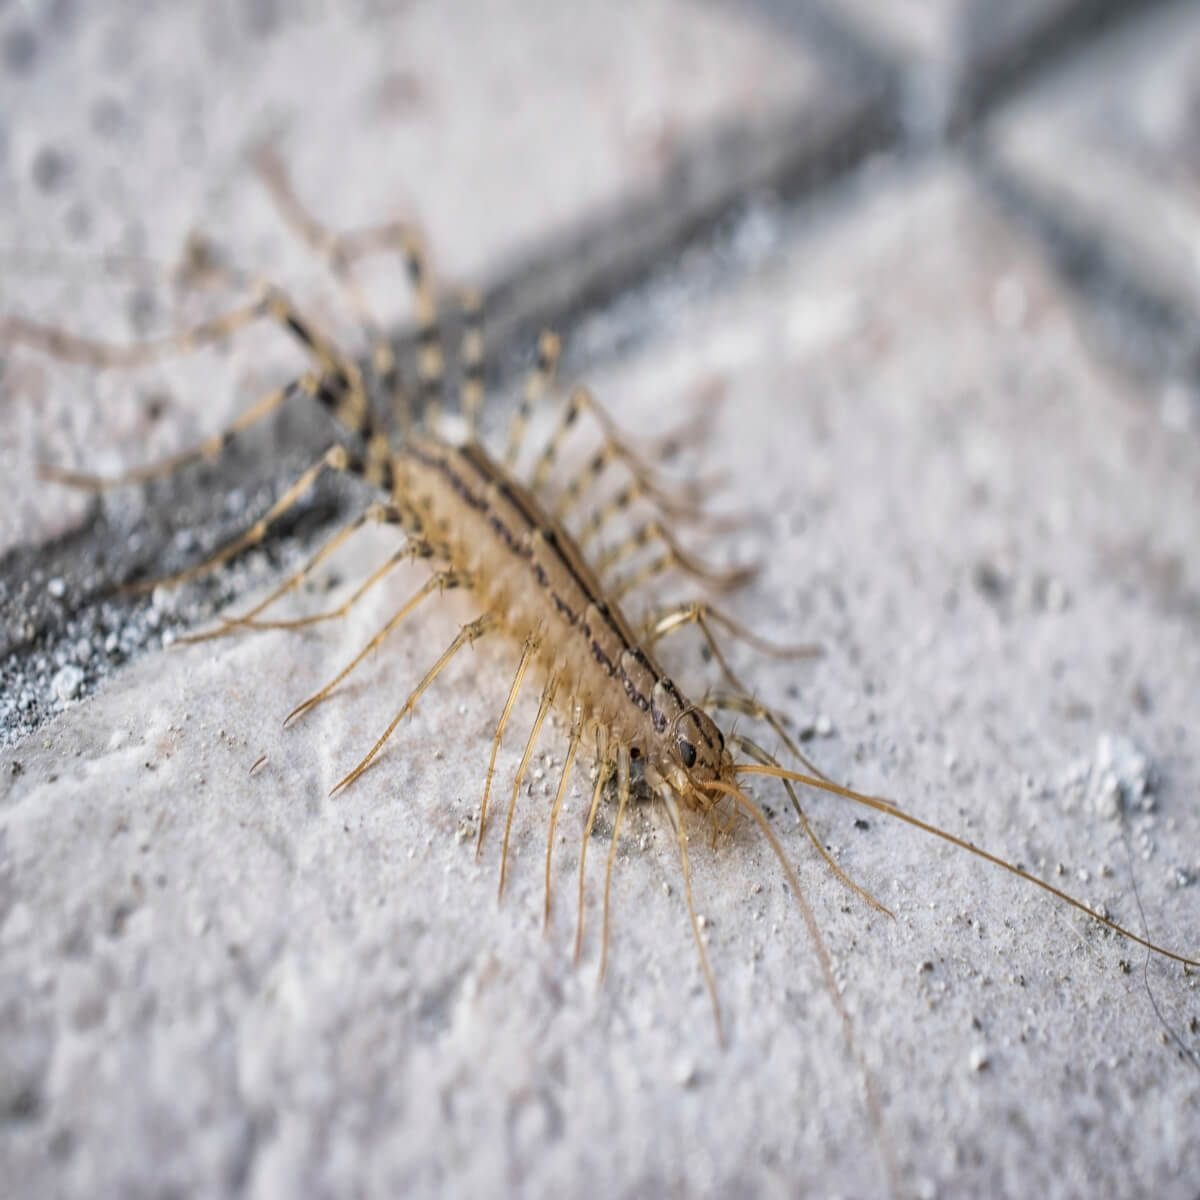 Centipede Pest Control How To Identify And Get Rid Of Centipedes